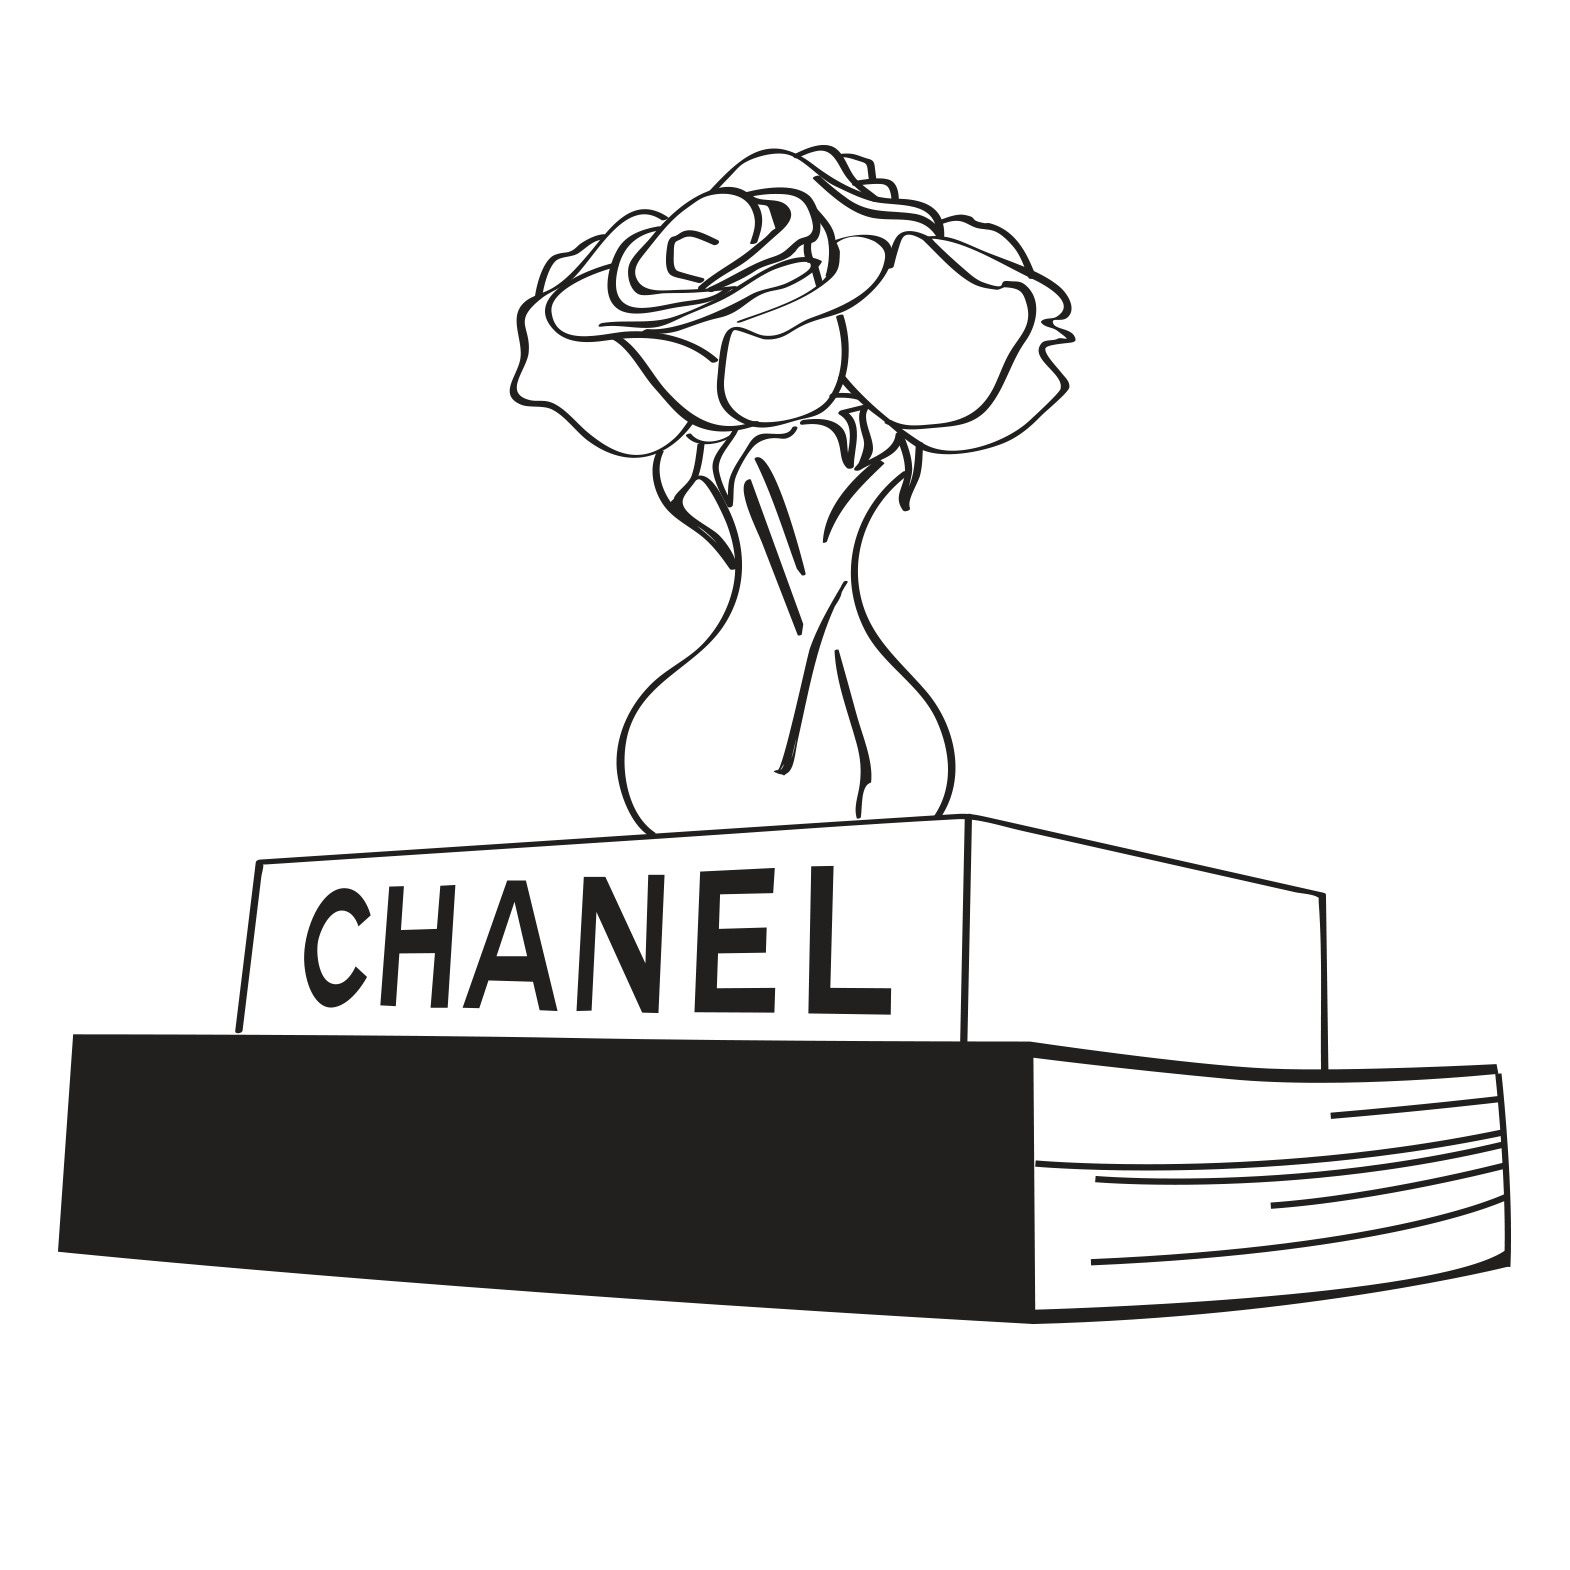 Chanel drawing store. Sev laser calabasas